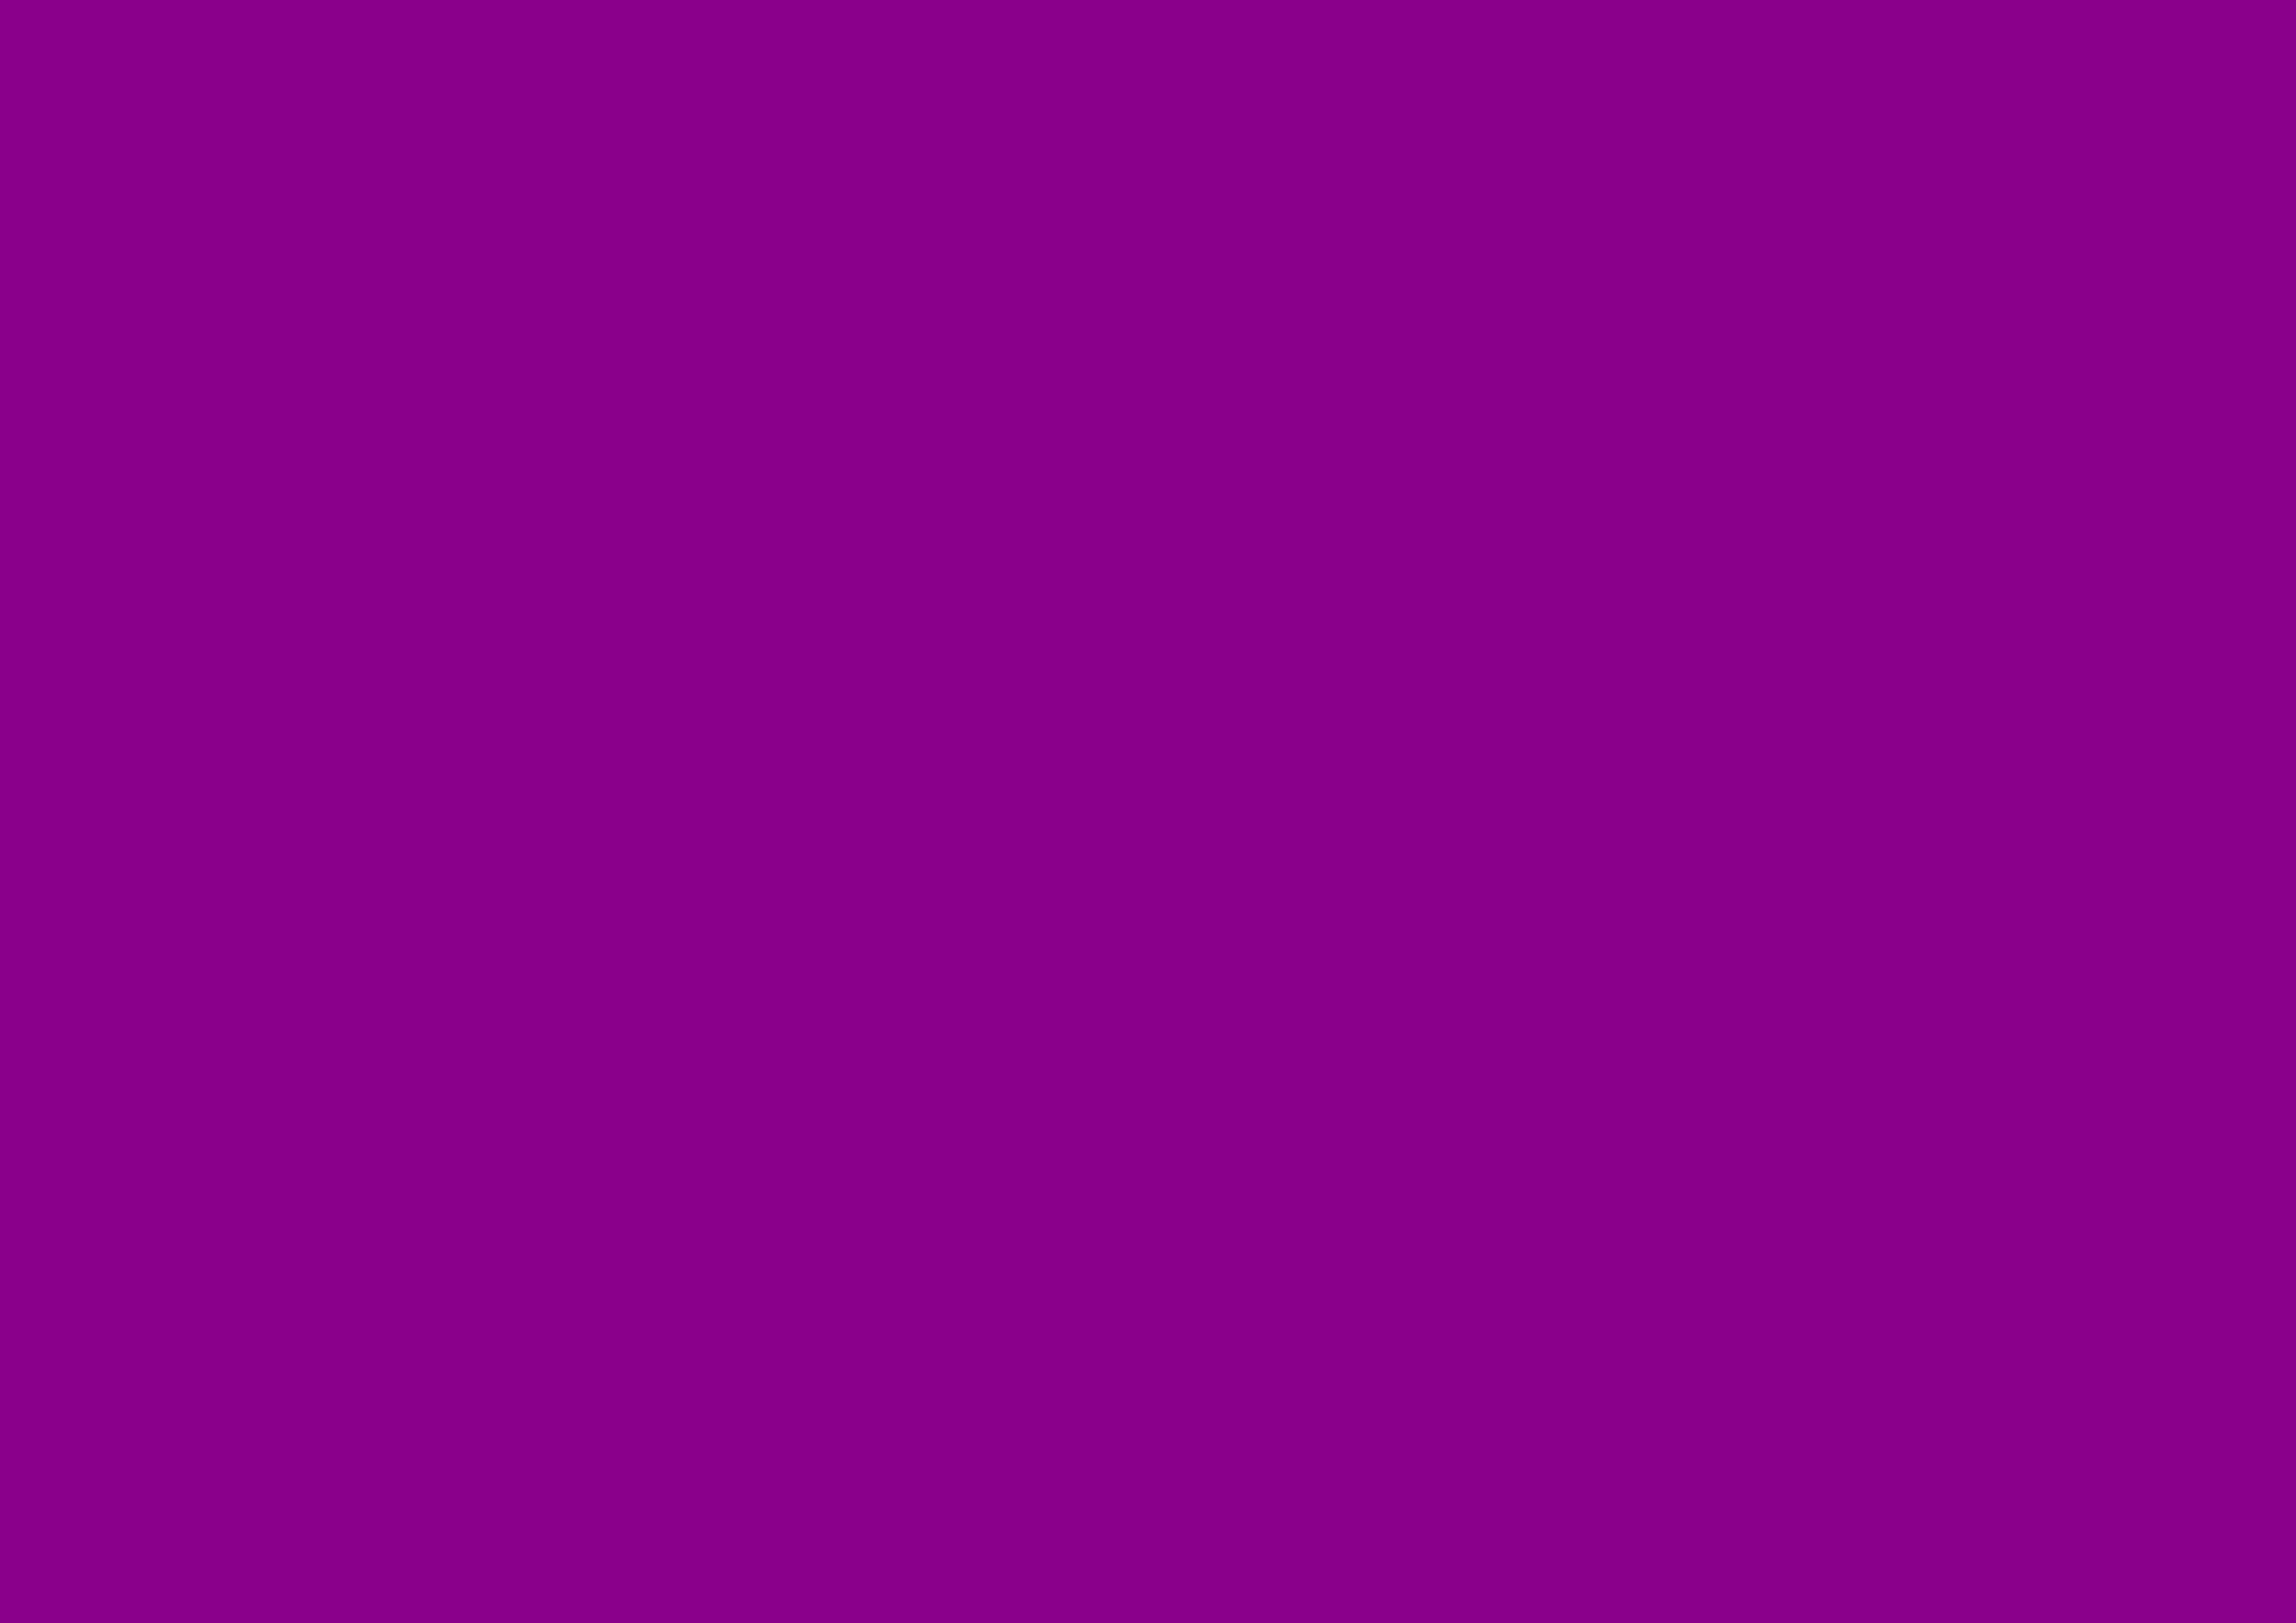 3508x2480 Dark Magenta Solid Color Background